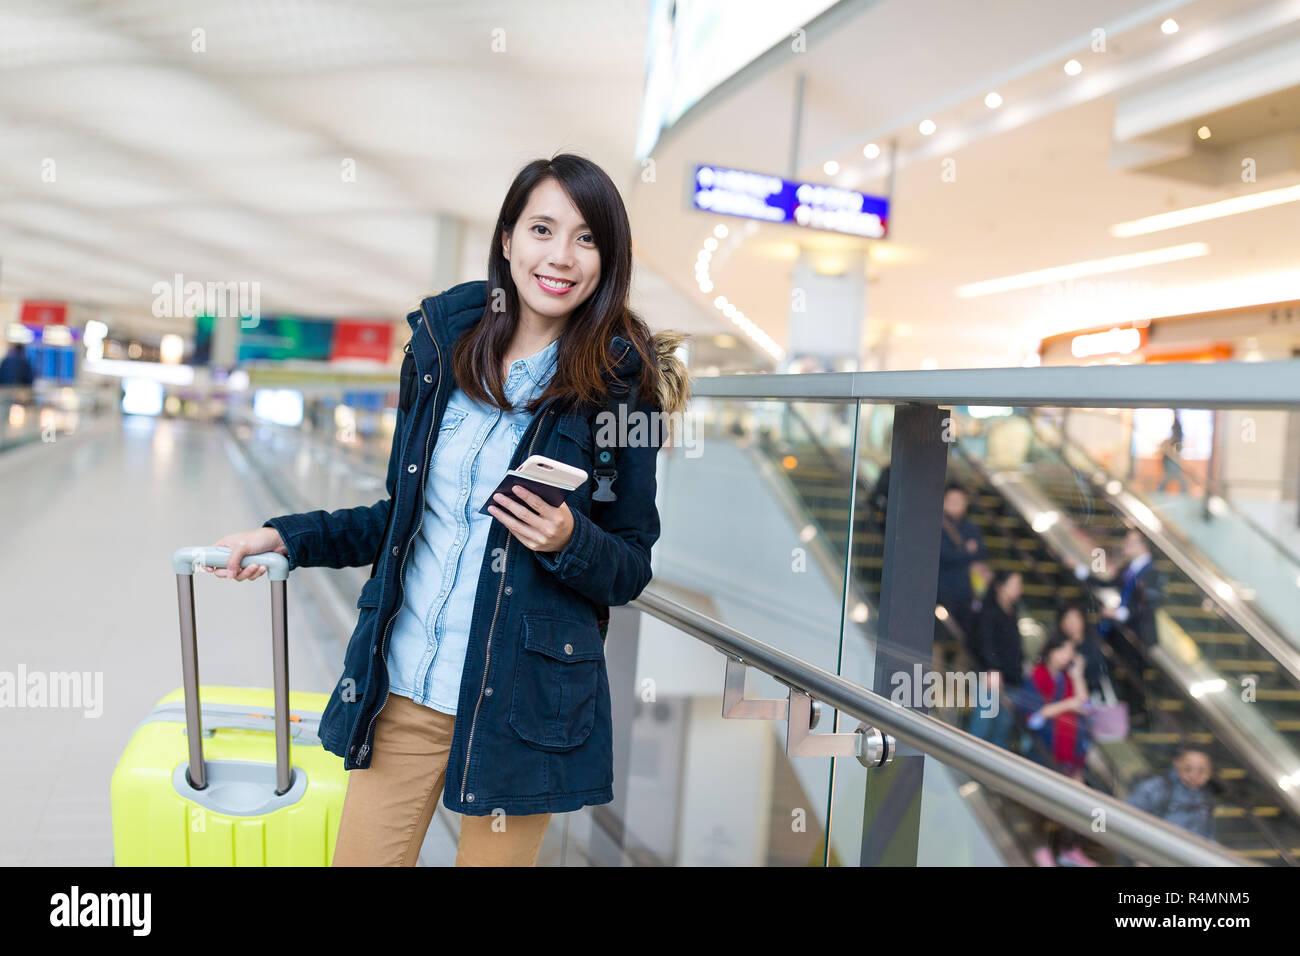 Woman go travel with her luggage at Hong Kong international airport - Stock Image